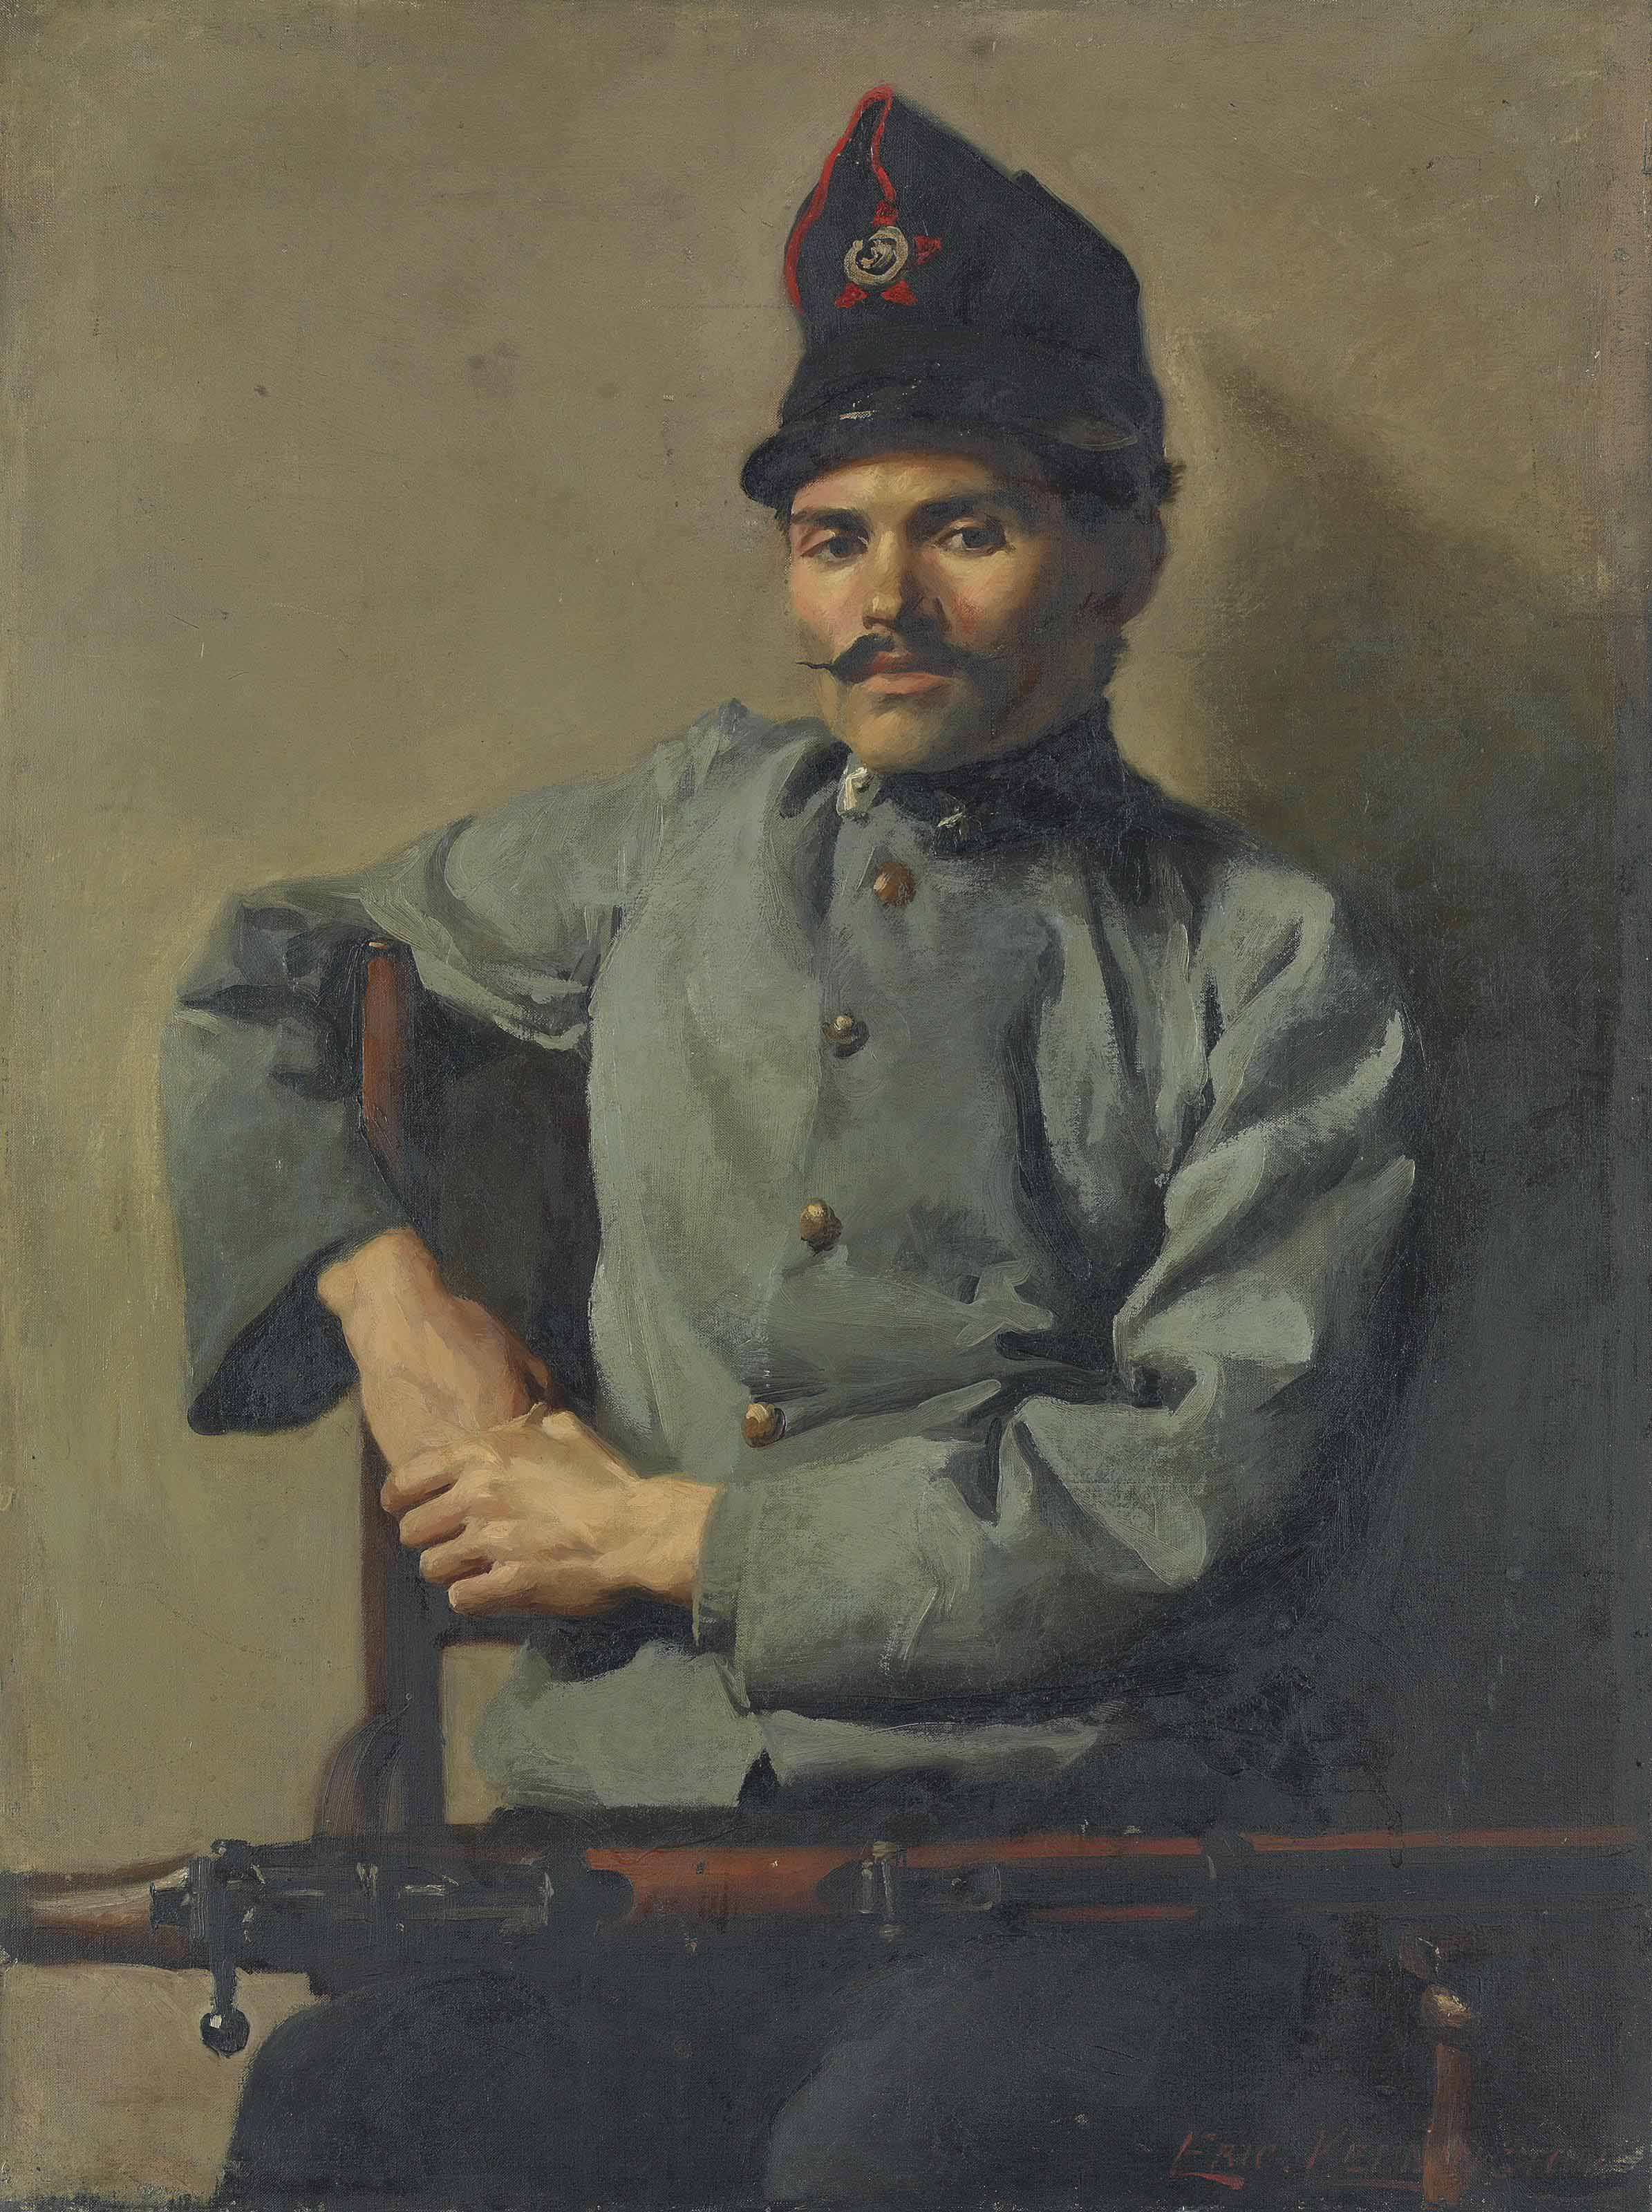 The Italian Soldier